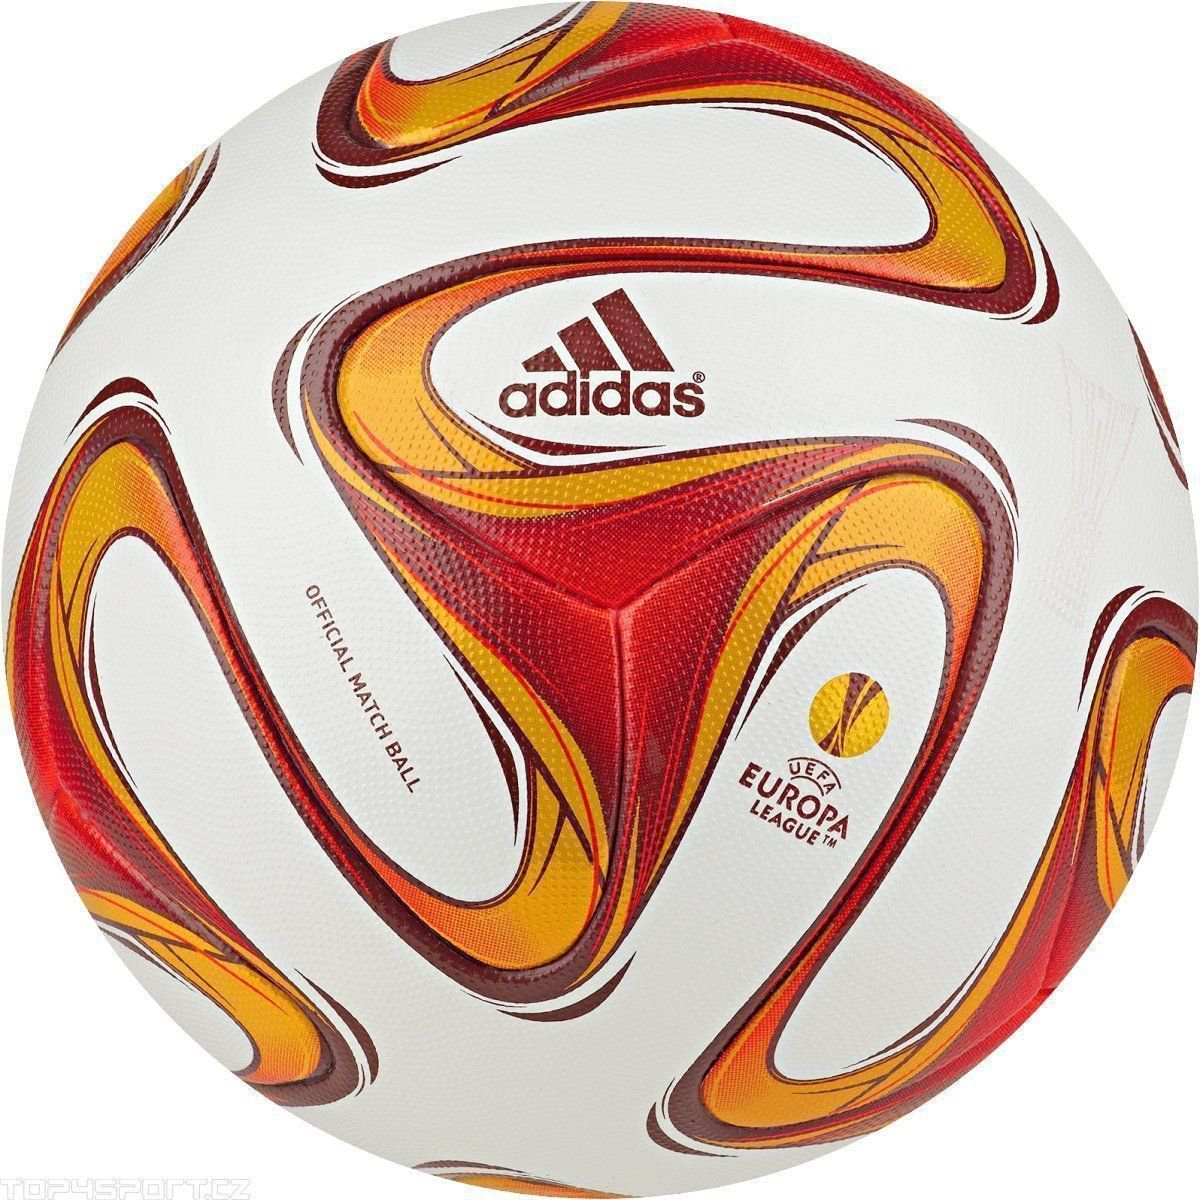 New Replica Adidas Europa League New Soccer Ball Made In Sialkot (Pakistan)